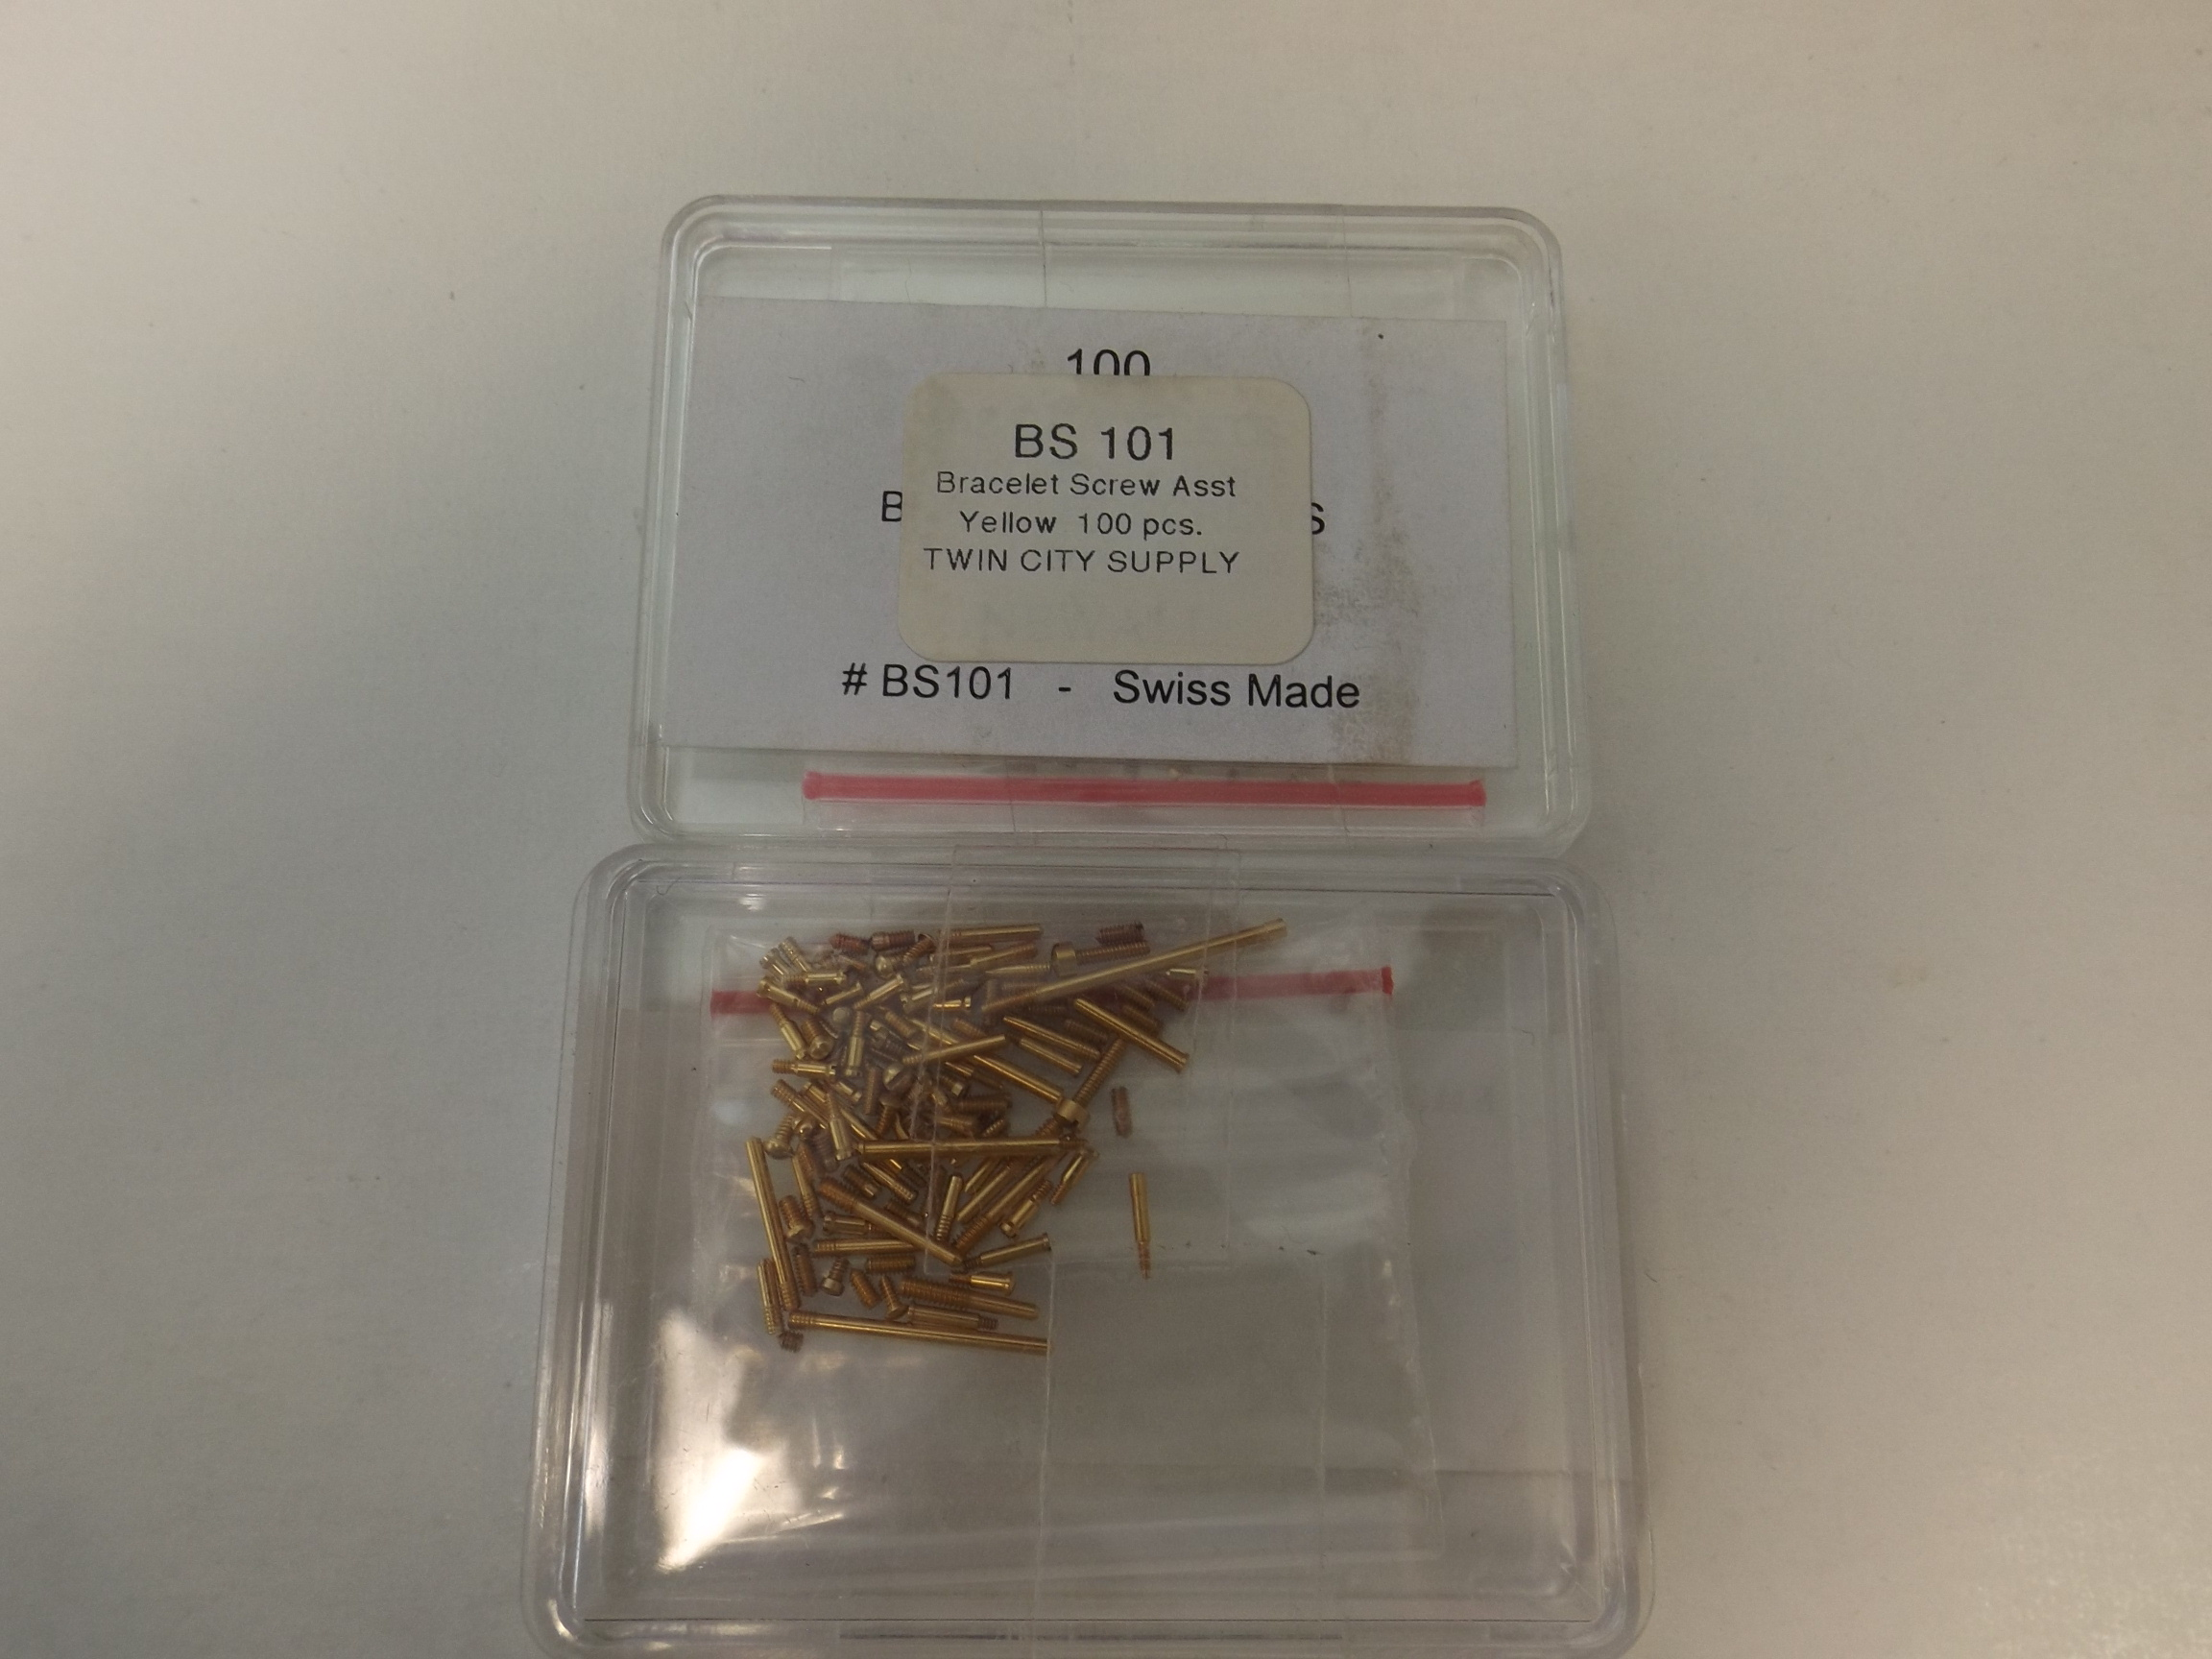 BS101 Bracelet Screw Assortment--Yellow- 100 pieces--Newall